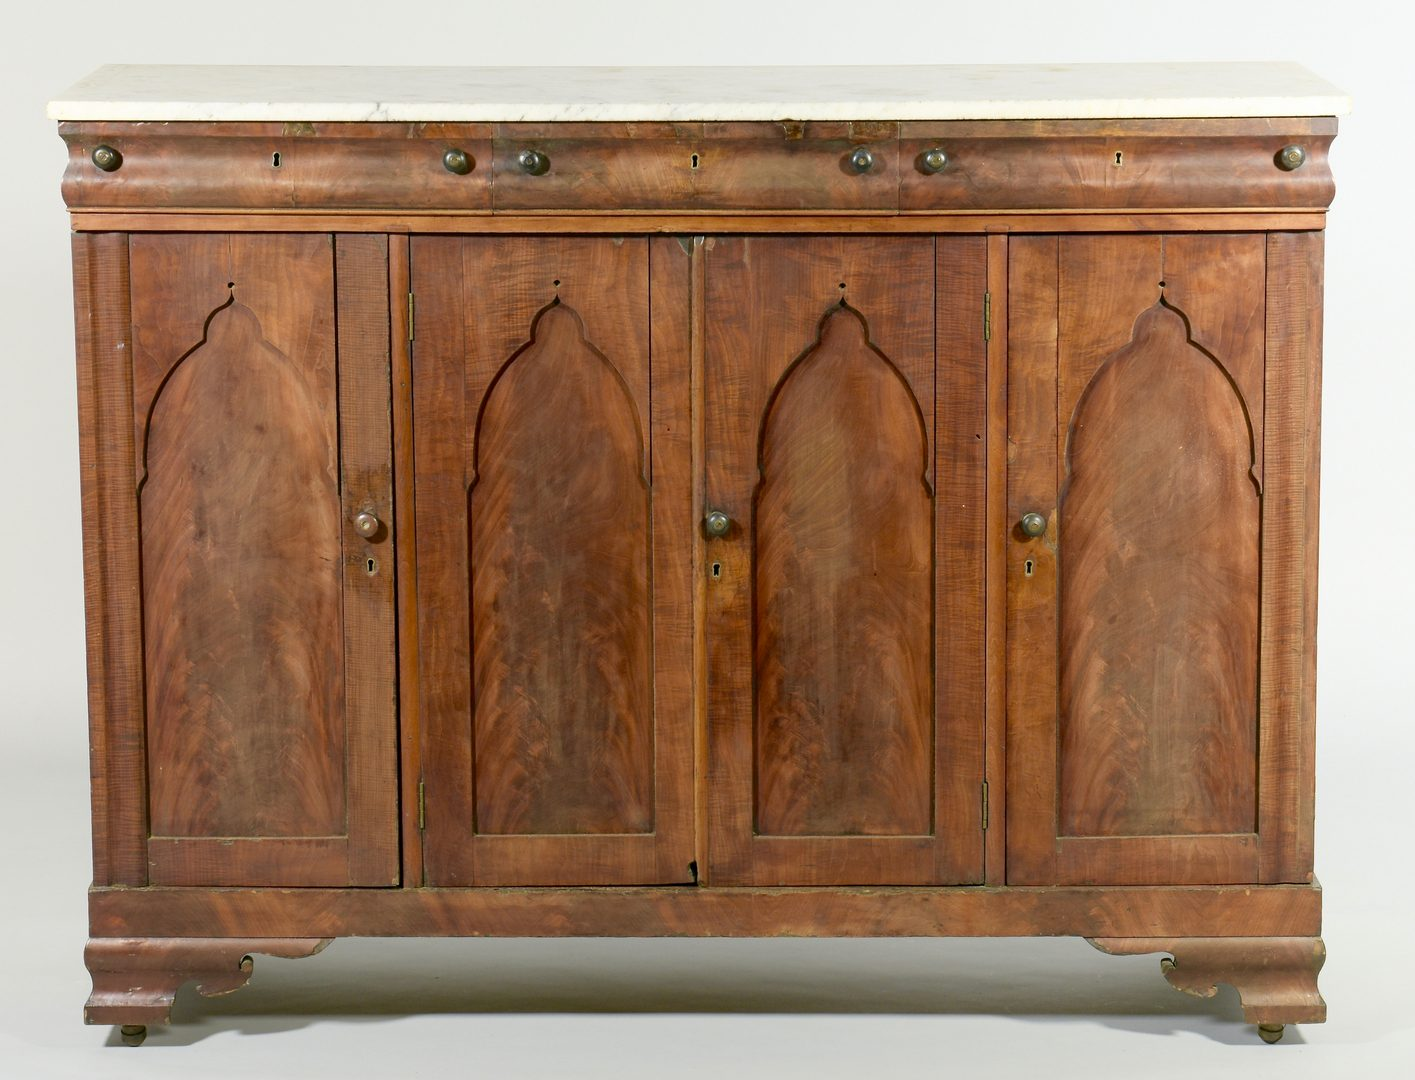 Lot 121: TN Gothic Revival Sideboard, Exhibited and Illustrated